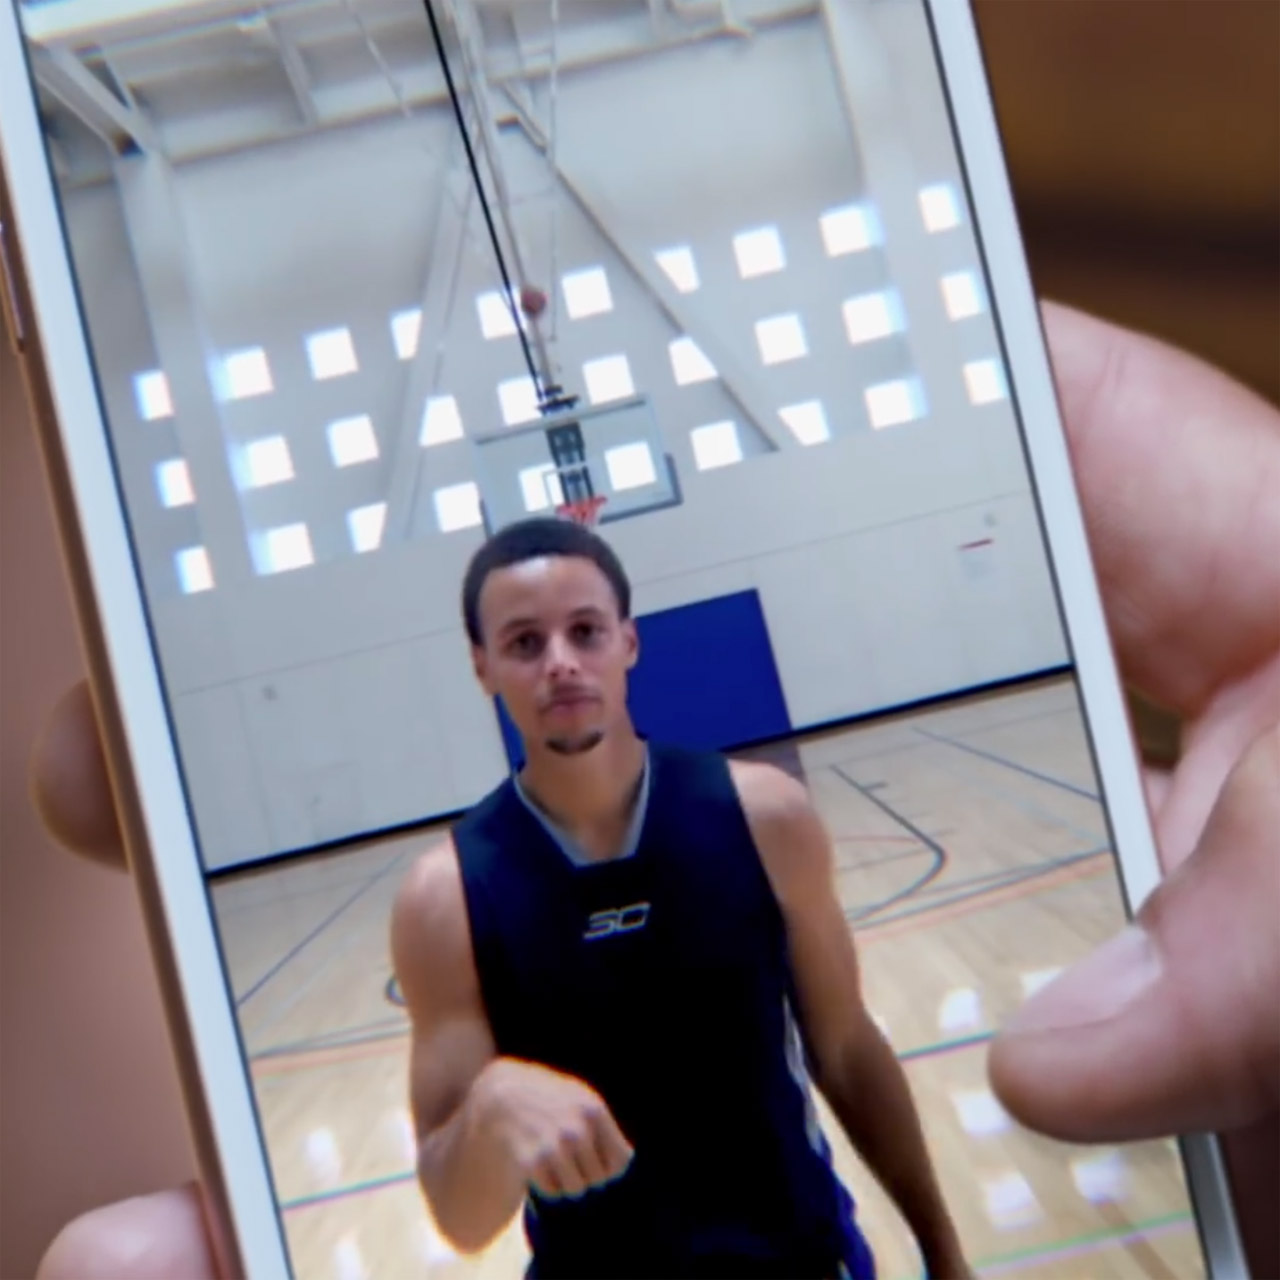 Steph Curry make half court shot in ad for Apple iPhone 6s with Live Photos